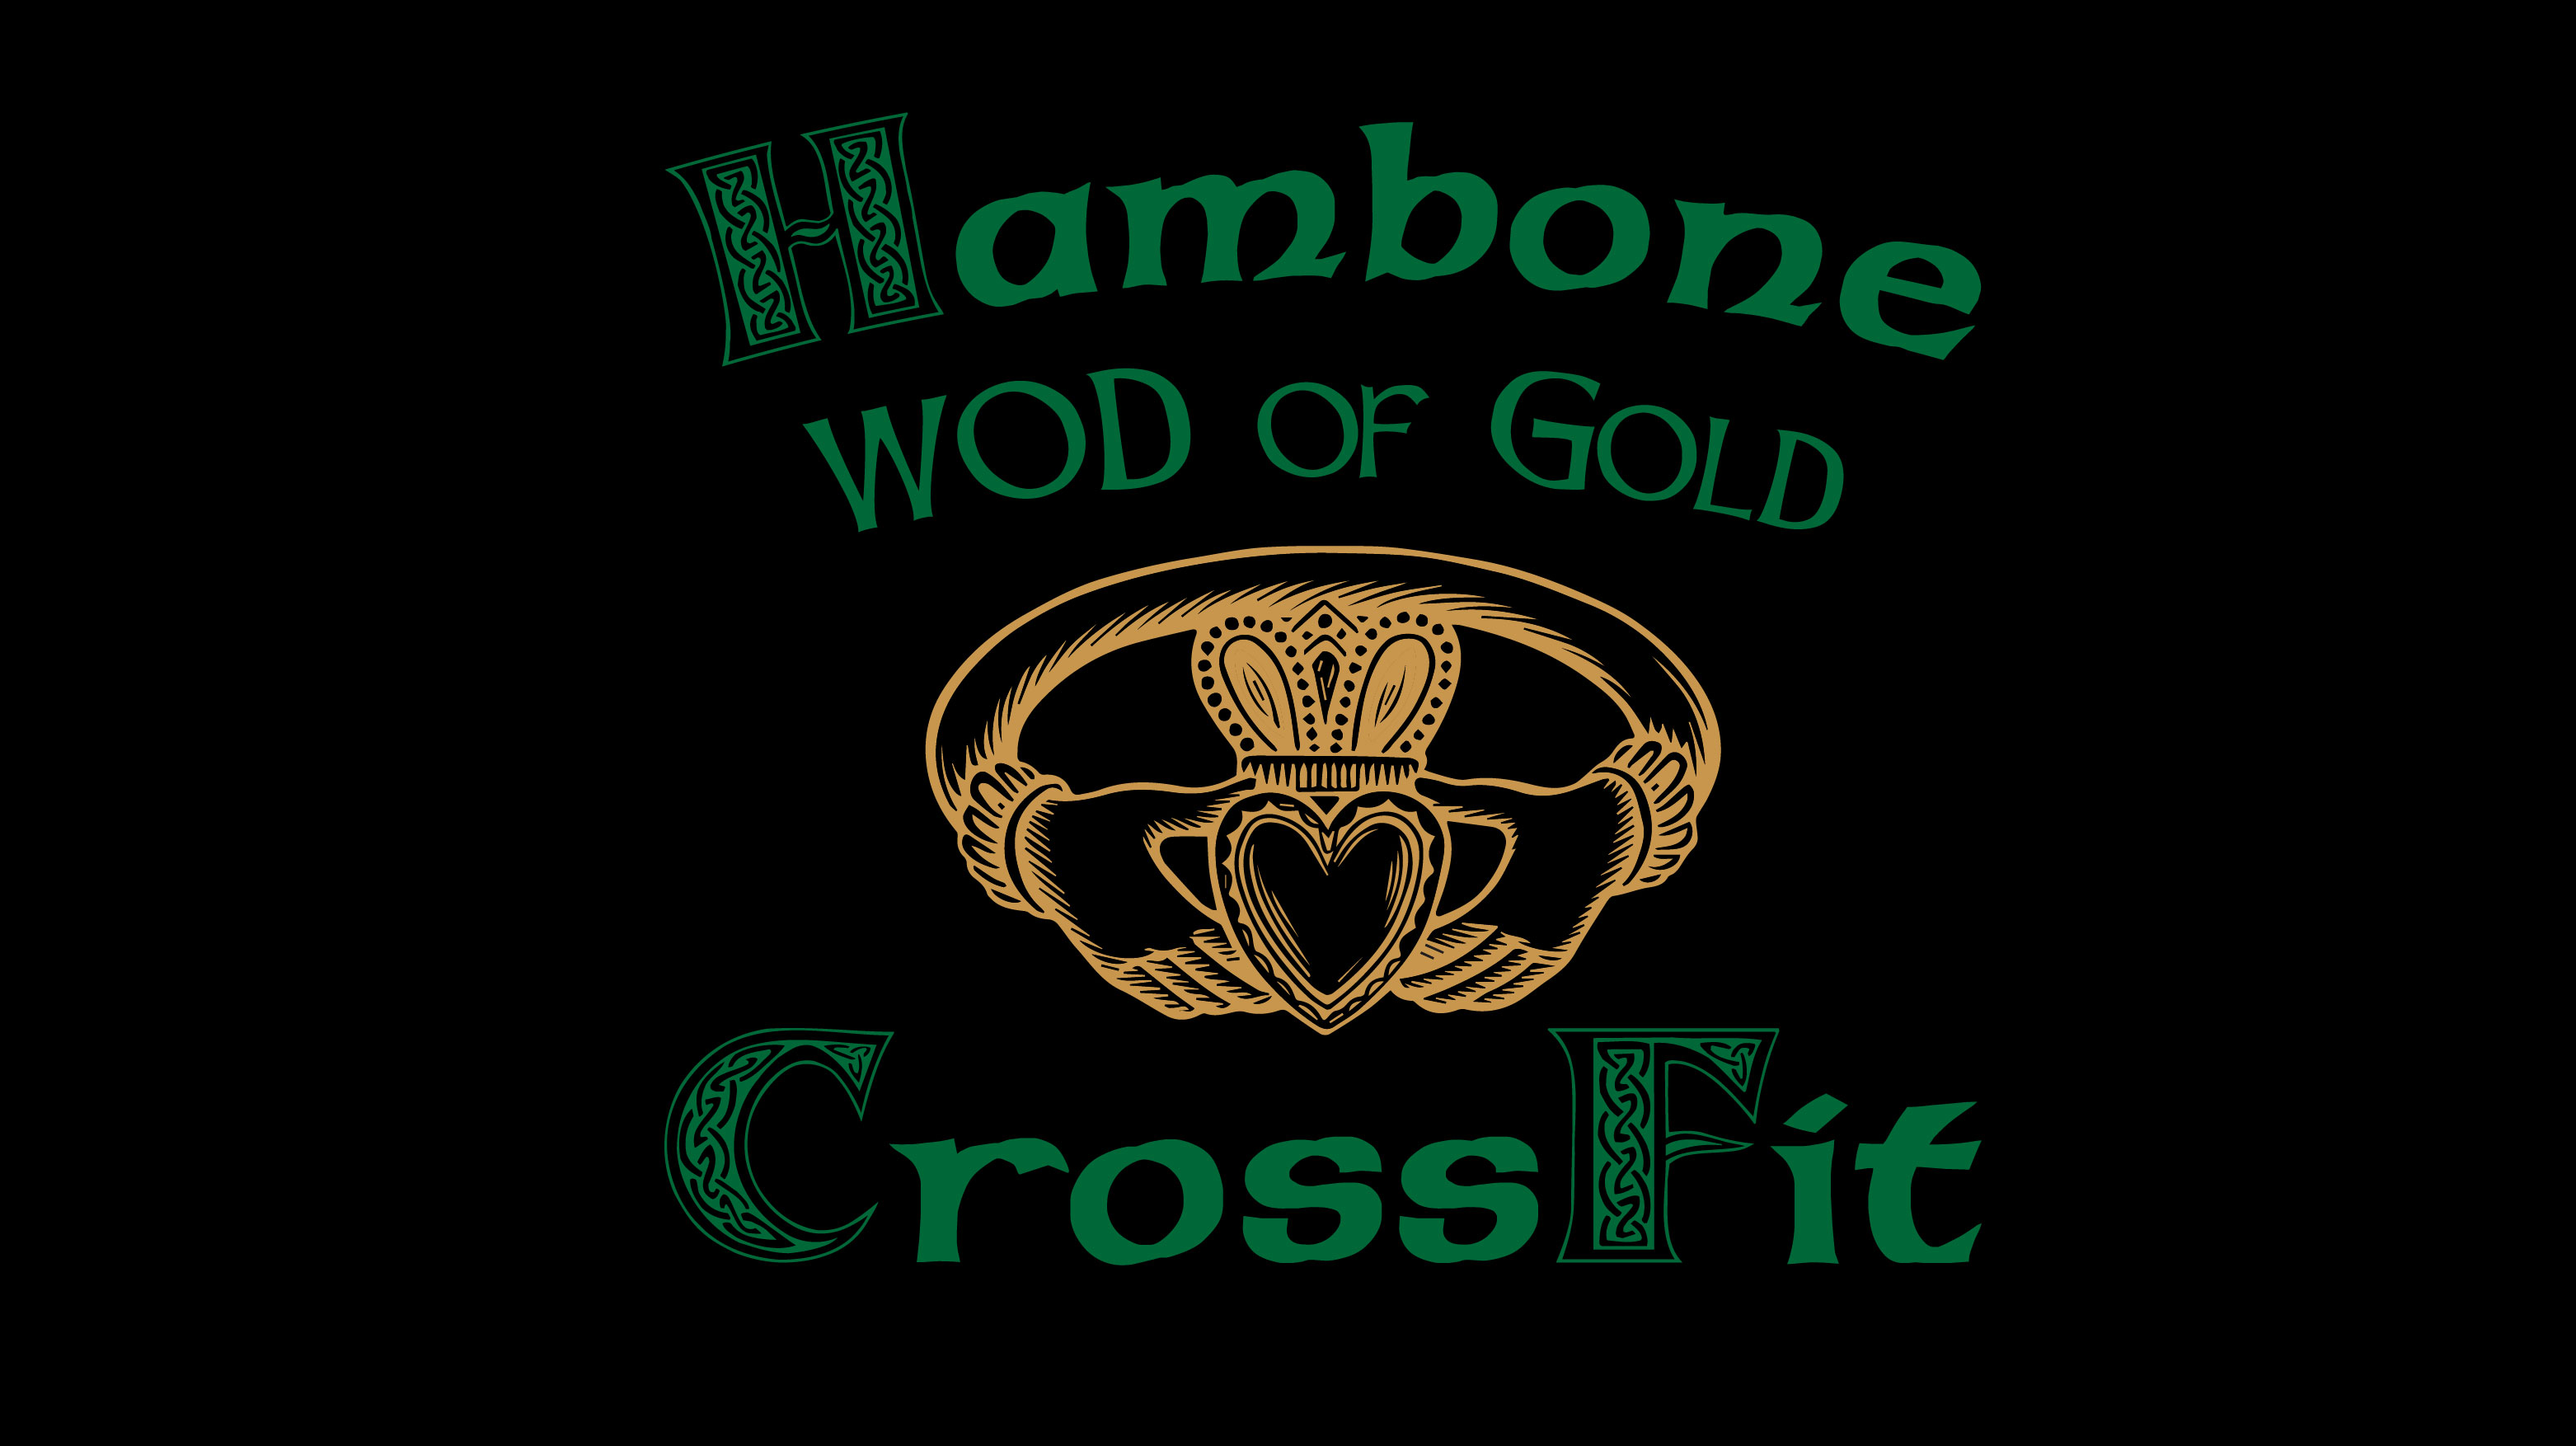 Hambone's WOD of Gold - CrossFit Team Competition